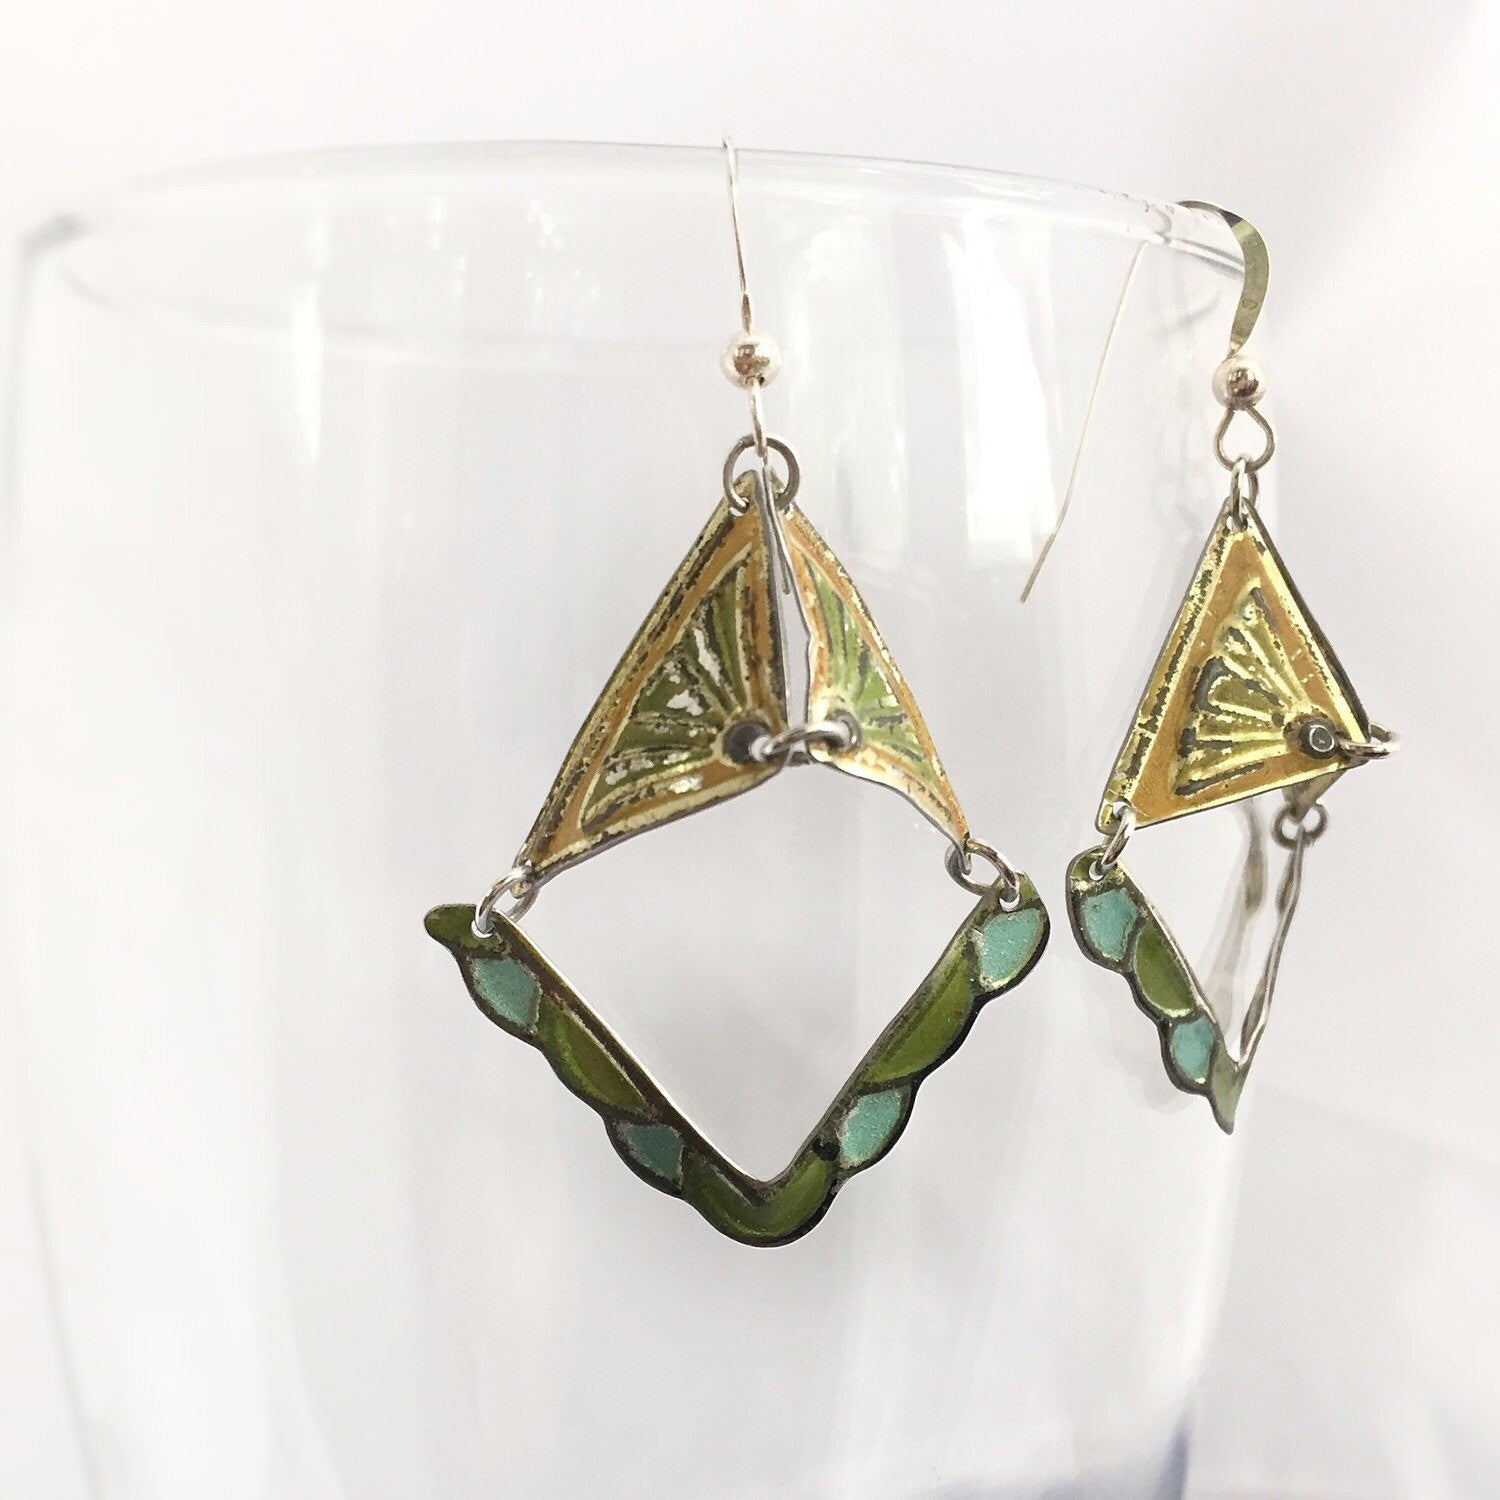 Tin jewelry - recycled vintage tin can earring - Valentine's Day gift ideas